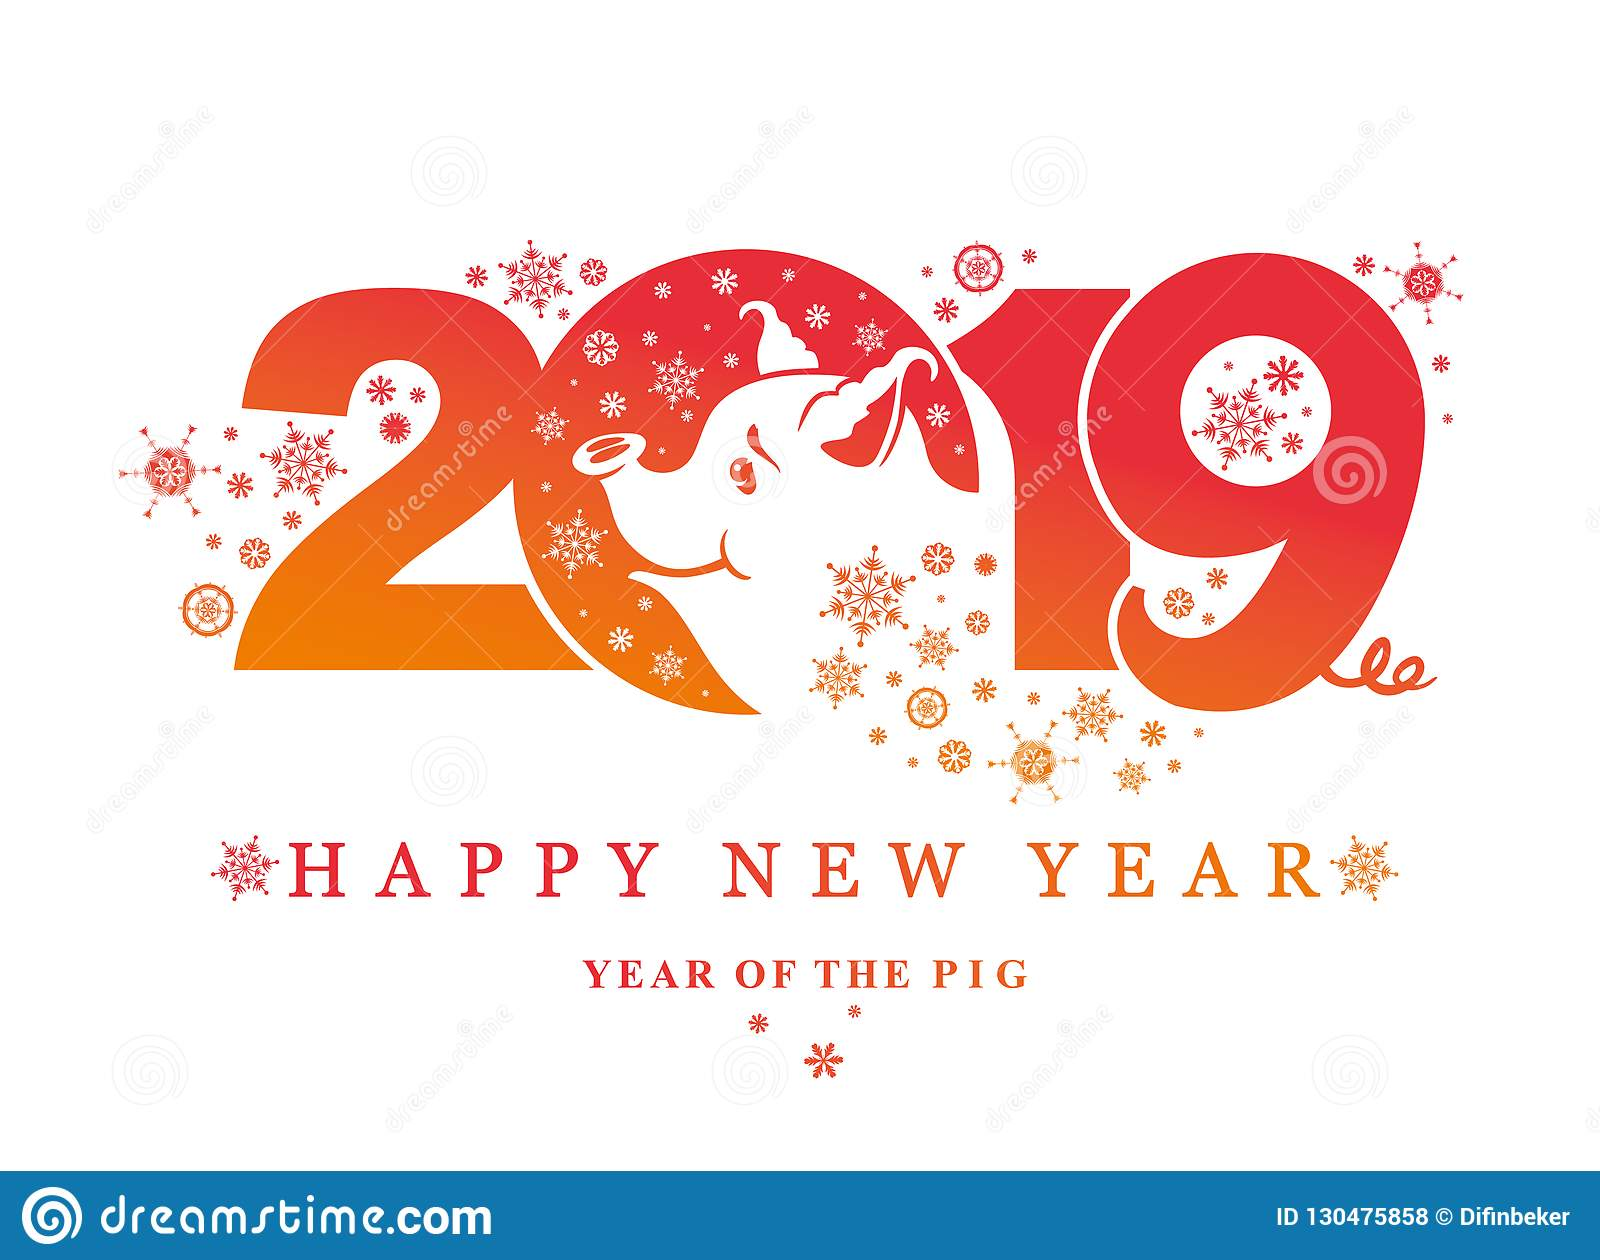 Year of the pig 2019 new year card with pattern 2019 and charming pig and snowflakes